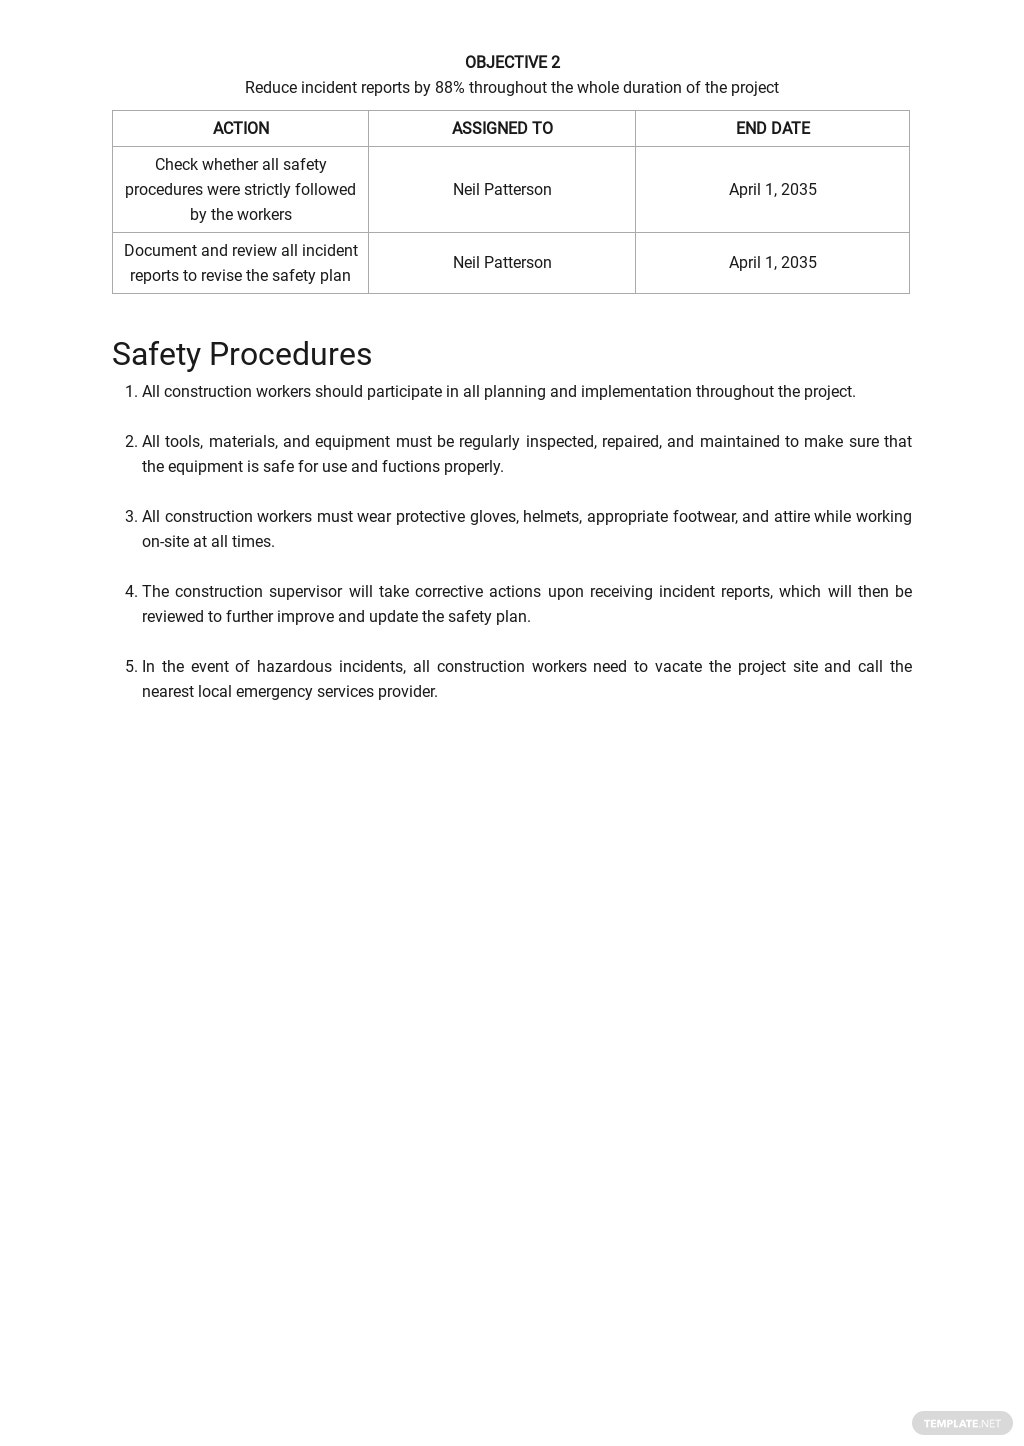 Construction Project Site Specific Safety Plan Template 2.jpe